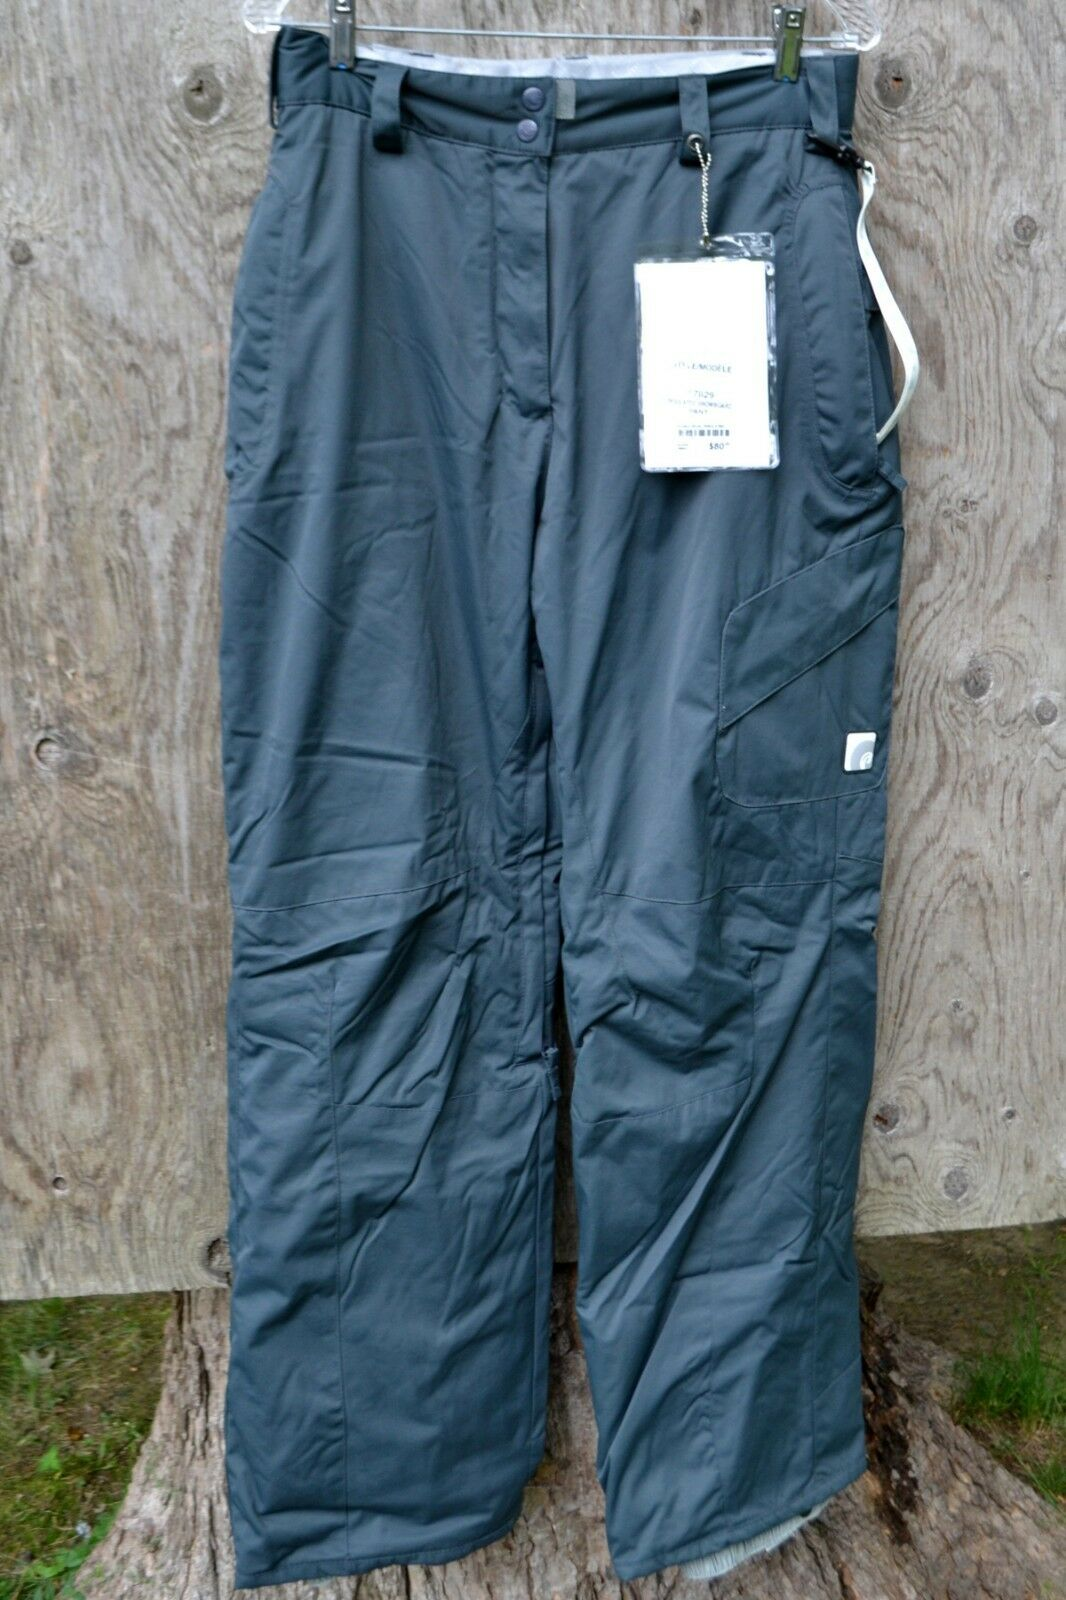 Ripzone  Women's Medium Rival Insulated Pants NWT  take up to 70% off